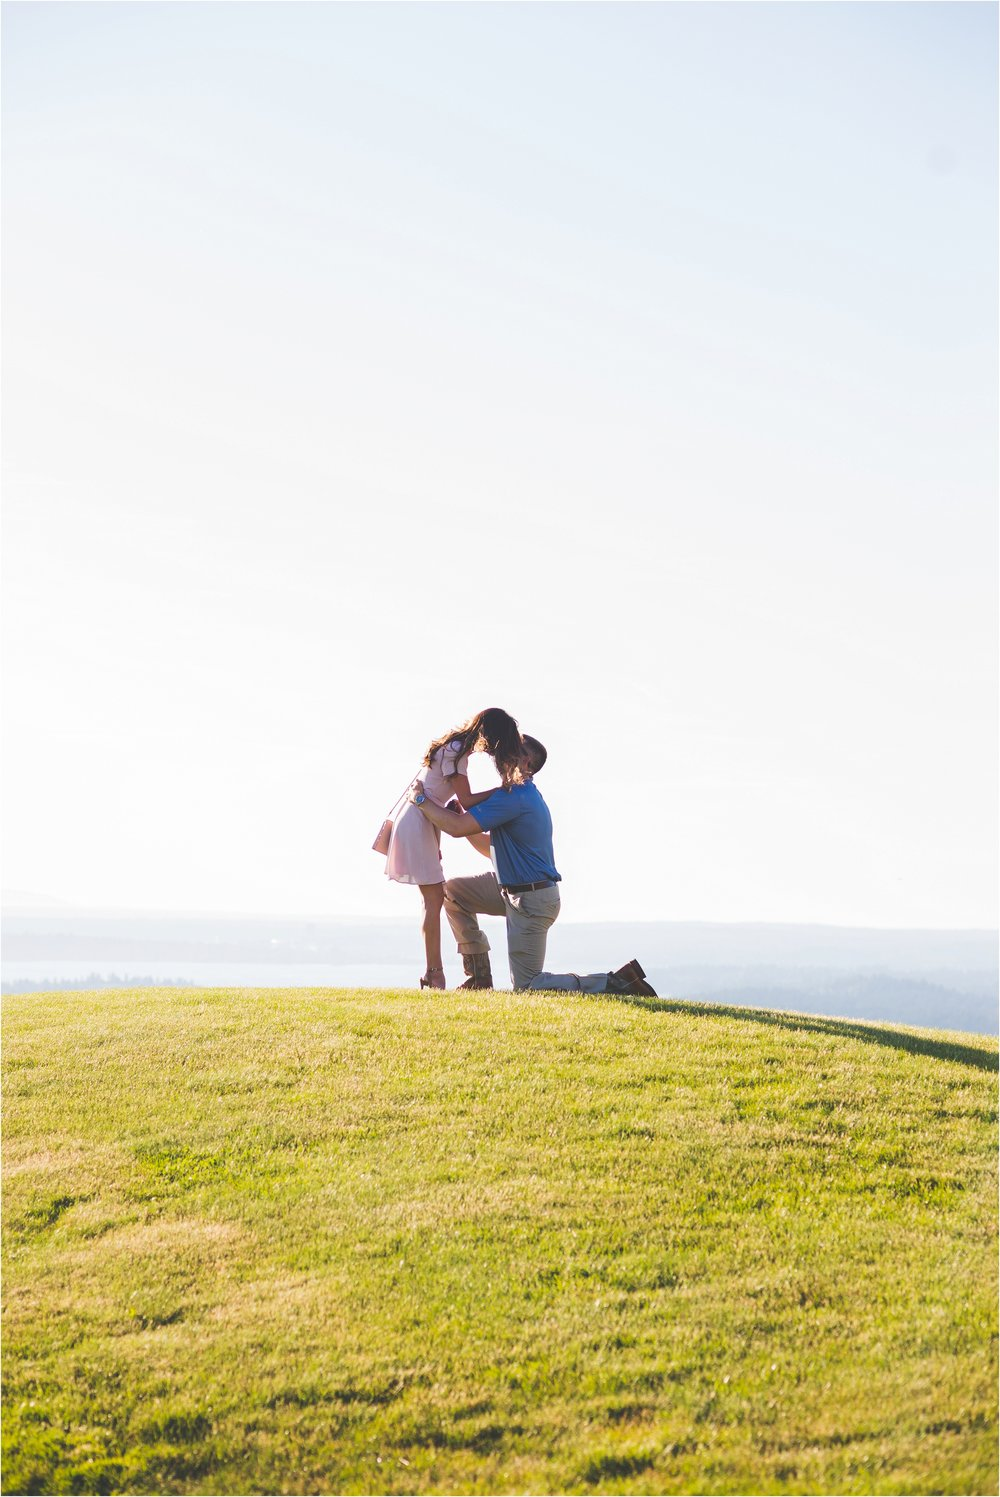 newcastle-golf-club-proposal-jannicka-mayte-seattle-washington-engagement-wedding-photographer_0004.jpg